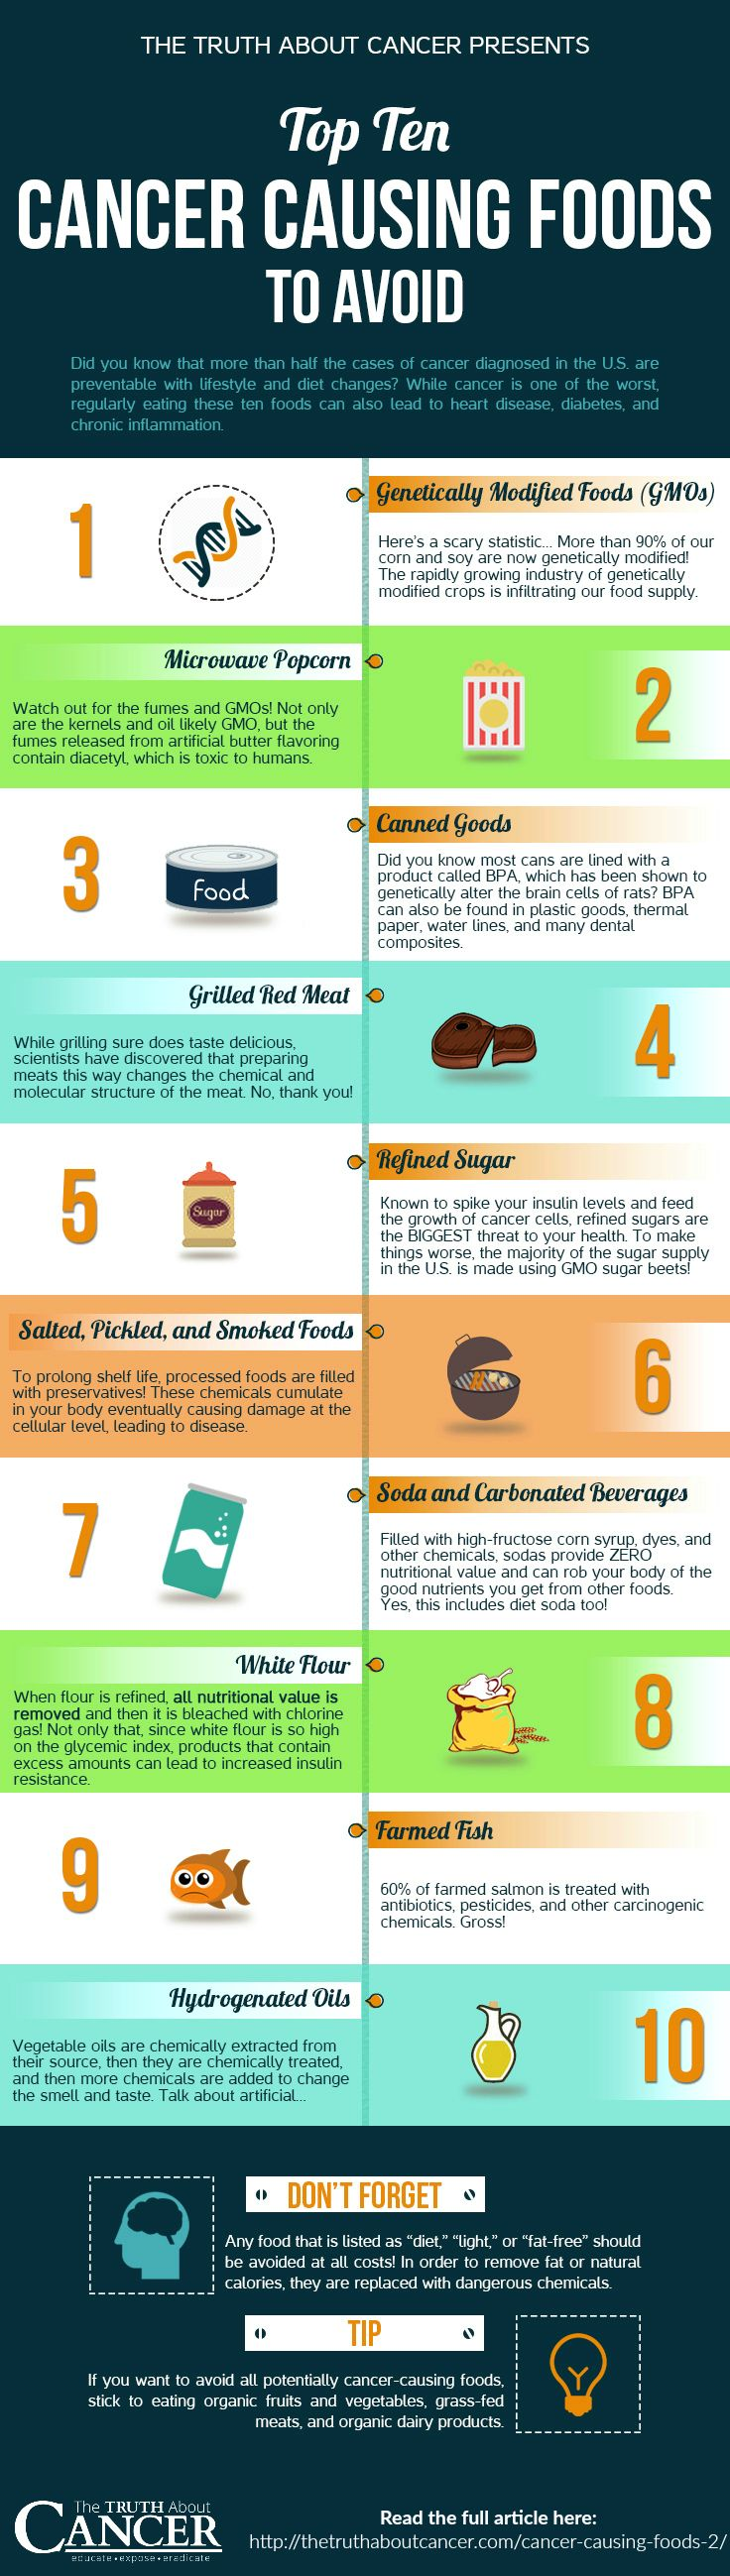 Top 10 Cancer Causing Foods To Give Up Infographic